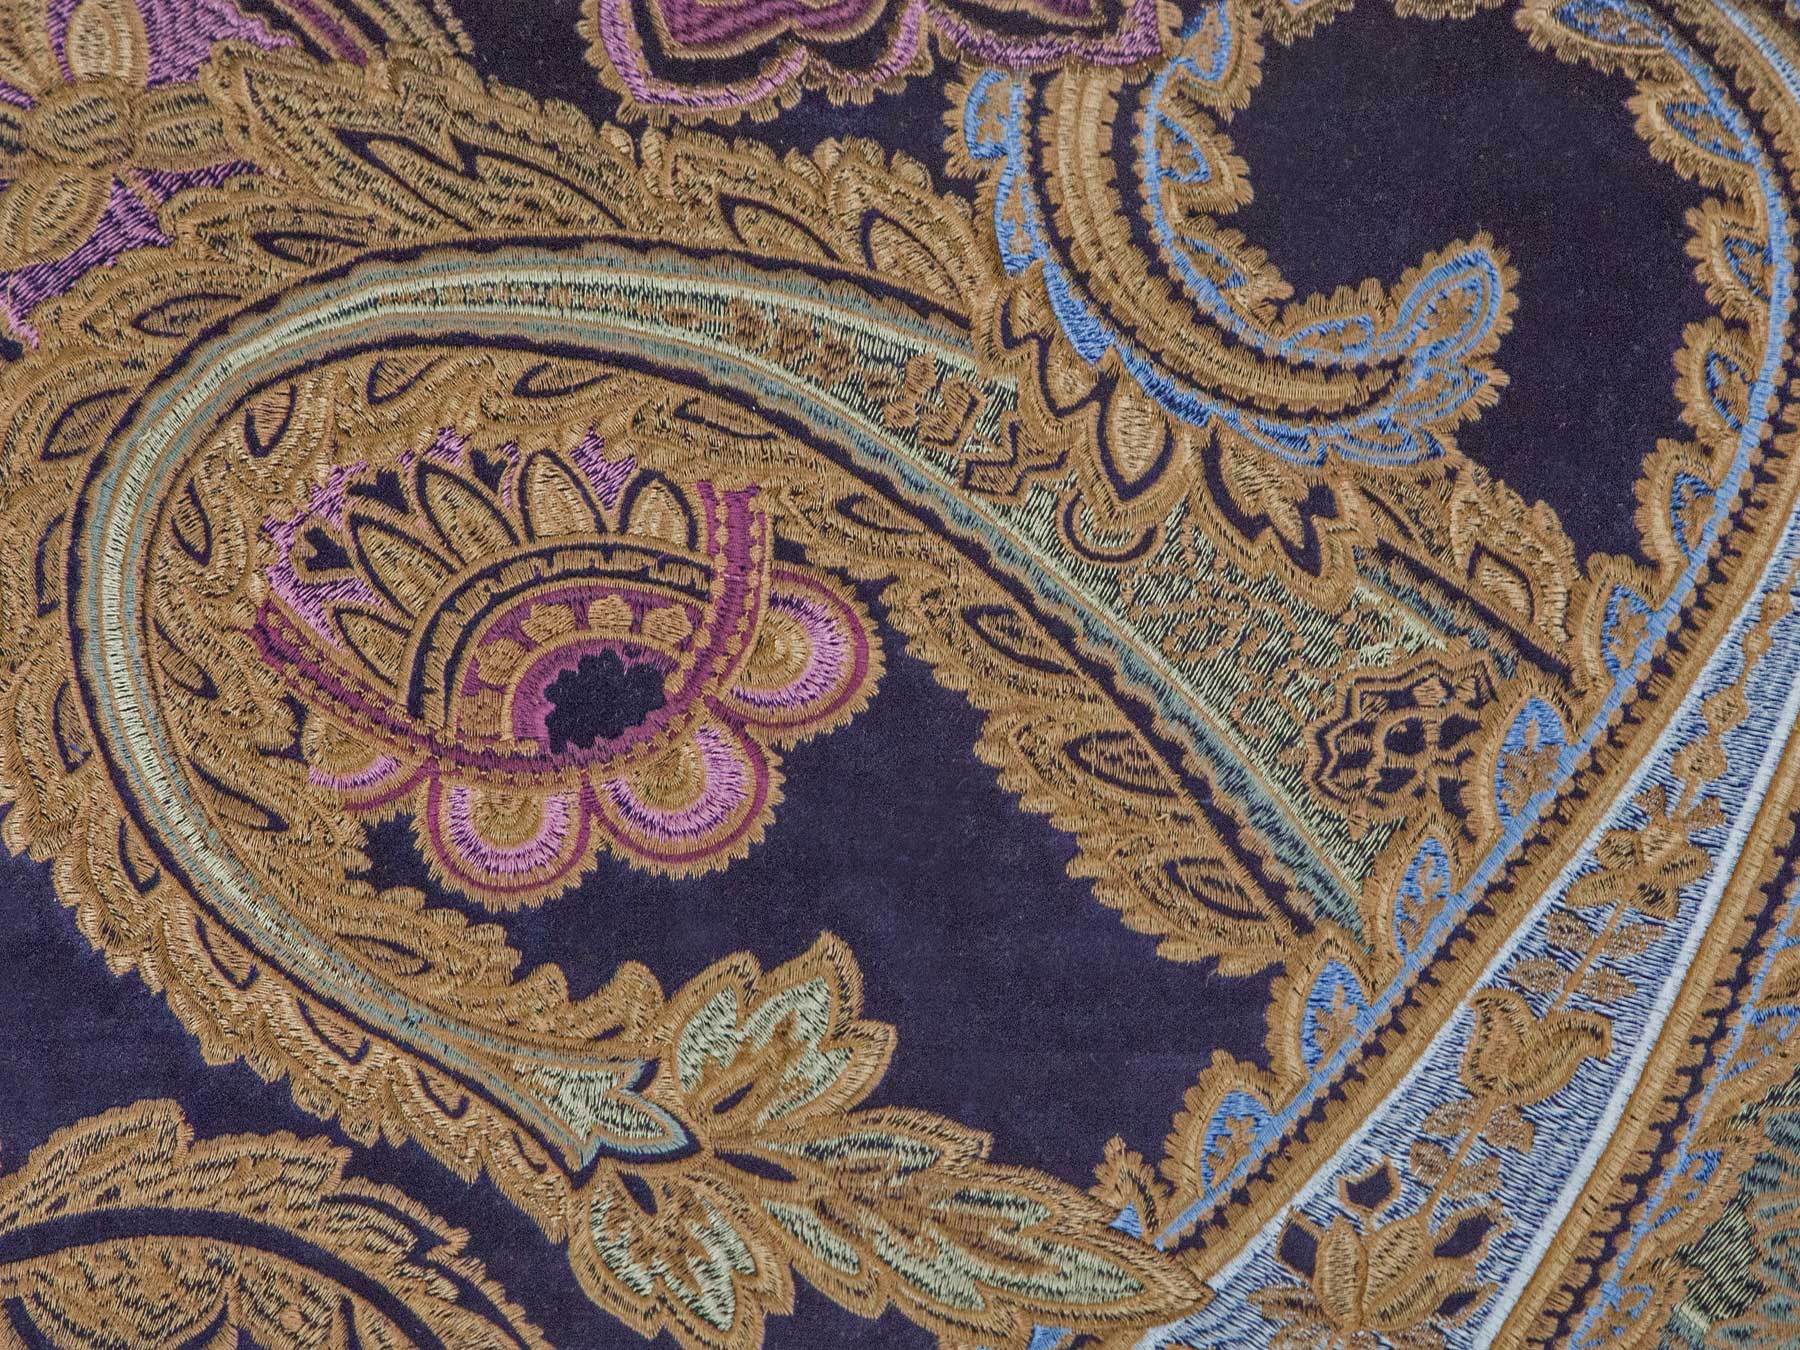 223/70 Tuileries/Blue-Purple Коллекция: Showroom collection Part 3